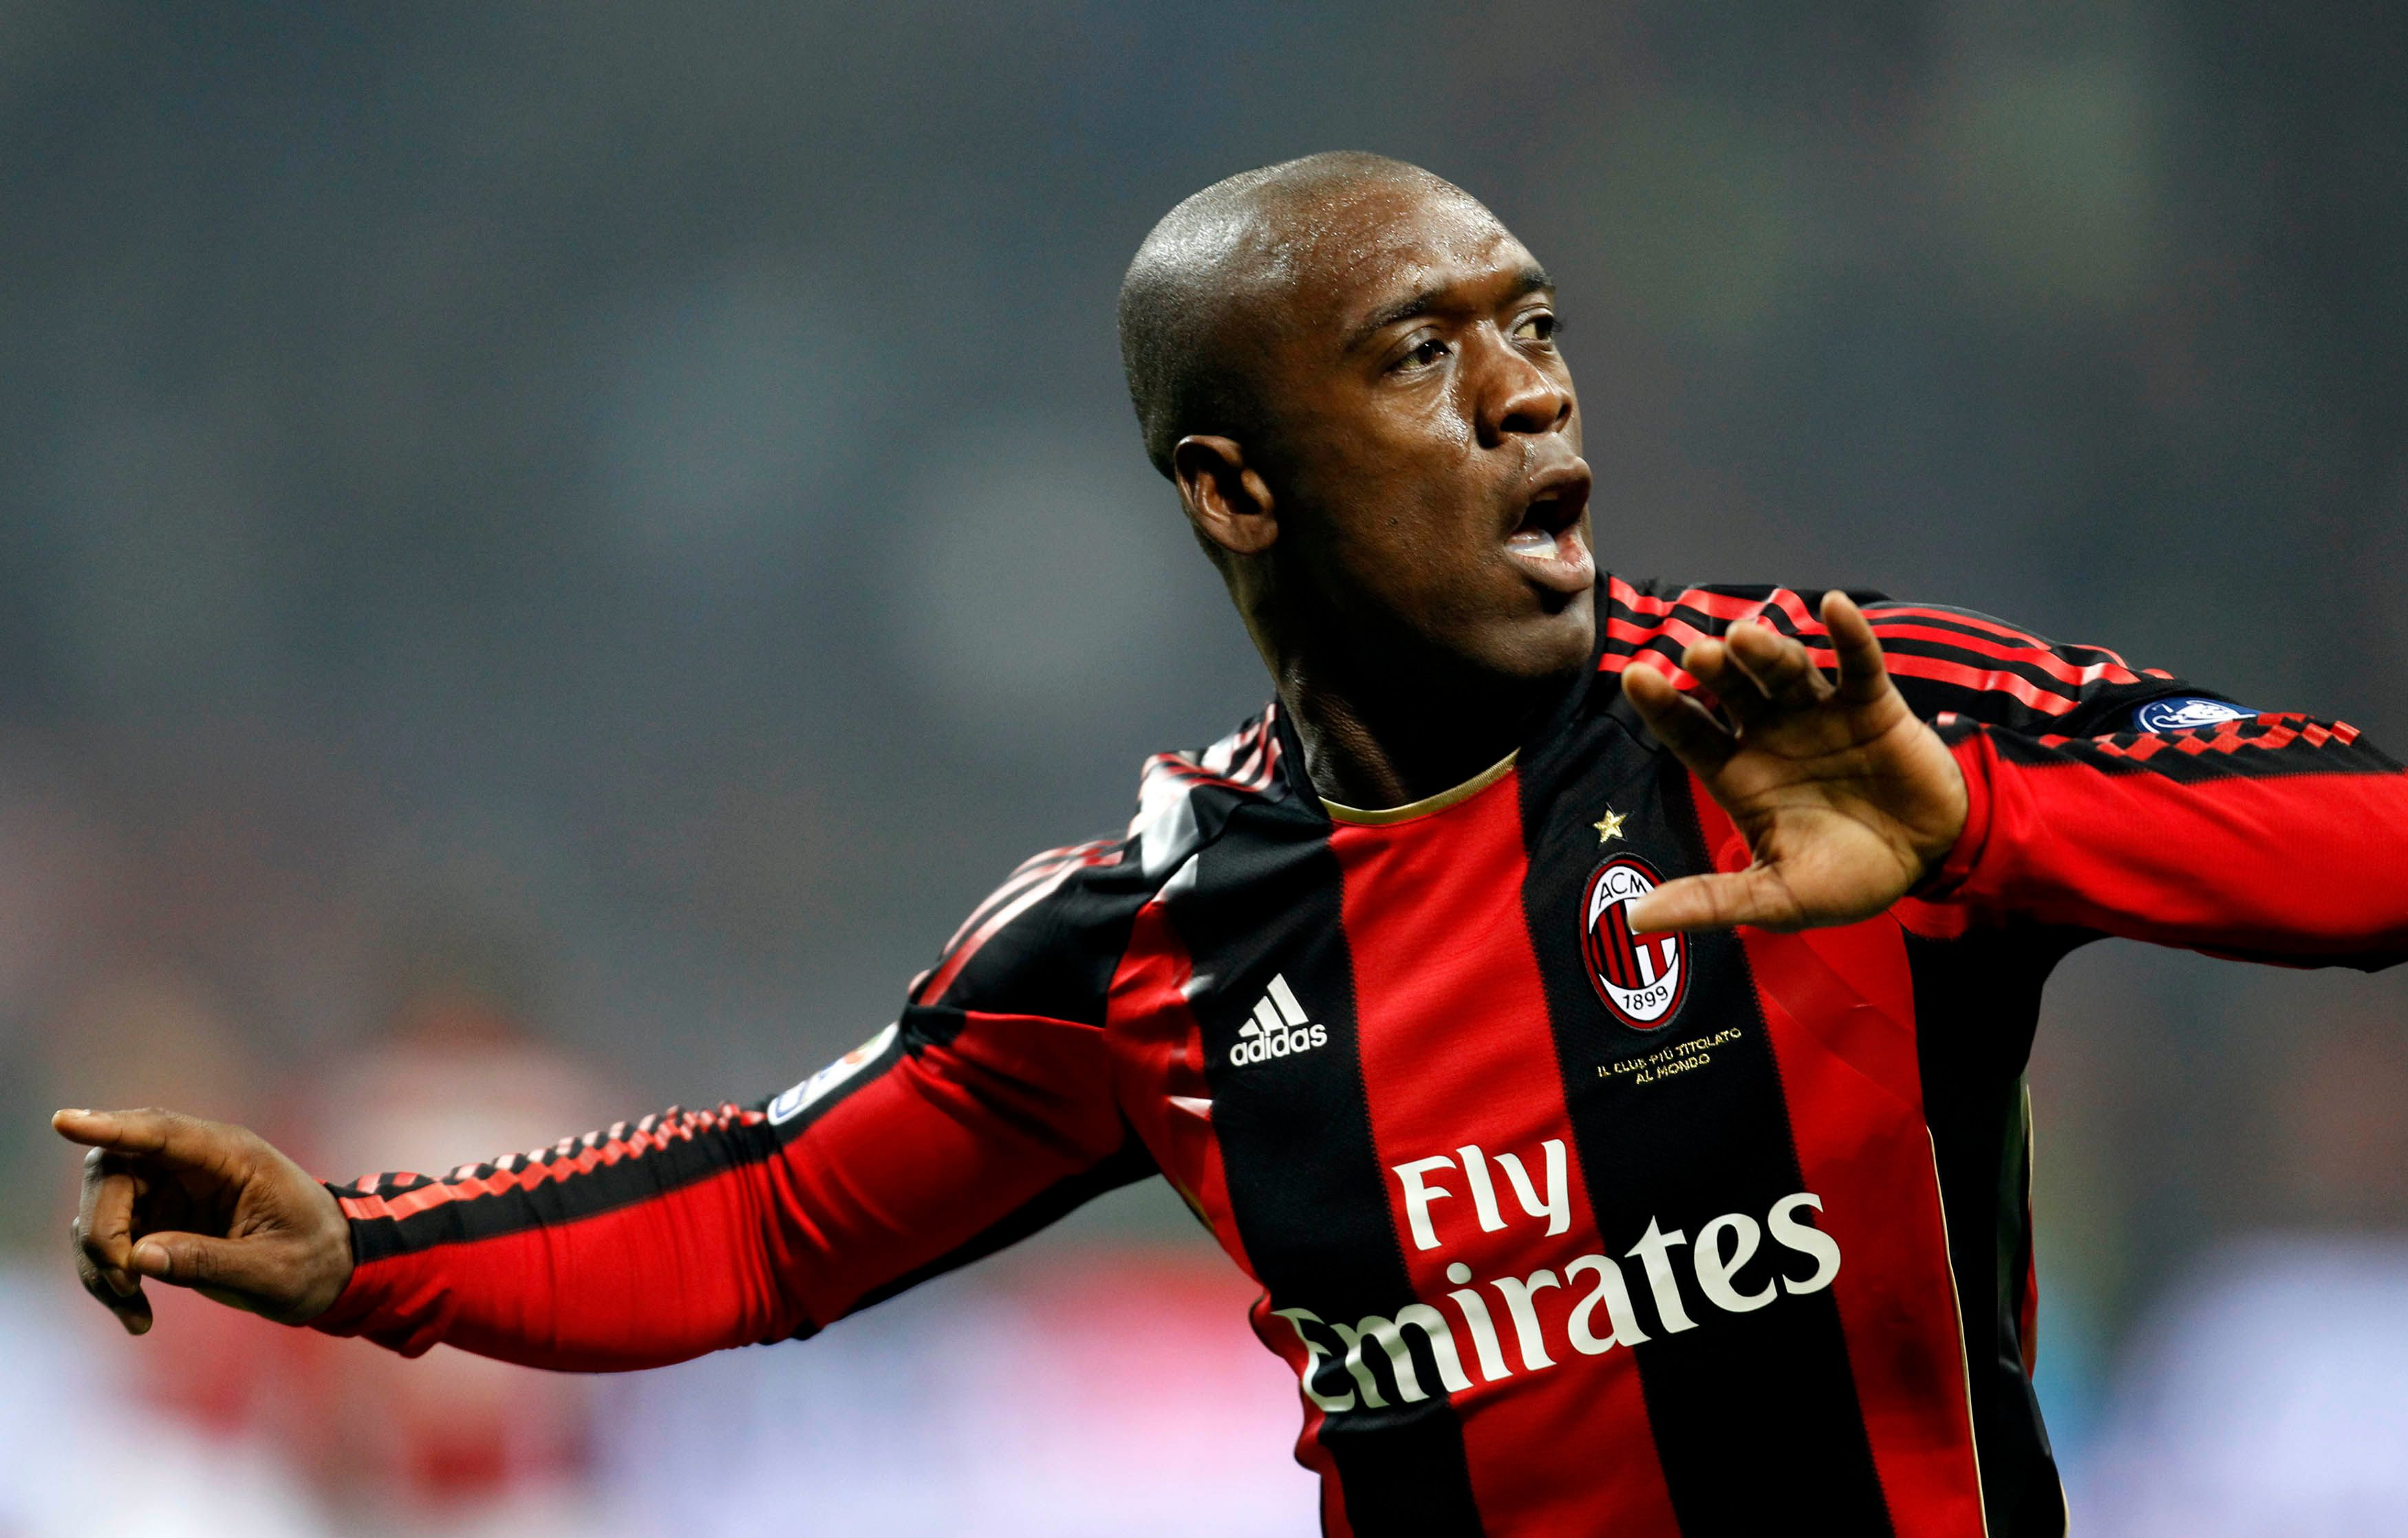 AC Milan's Seedorf celebrates after scoring against Parma during their Italian Serie A soccer match in Milan